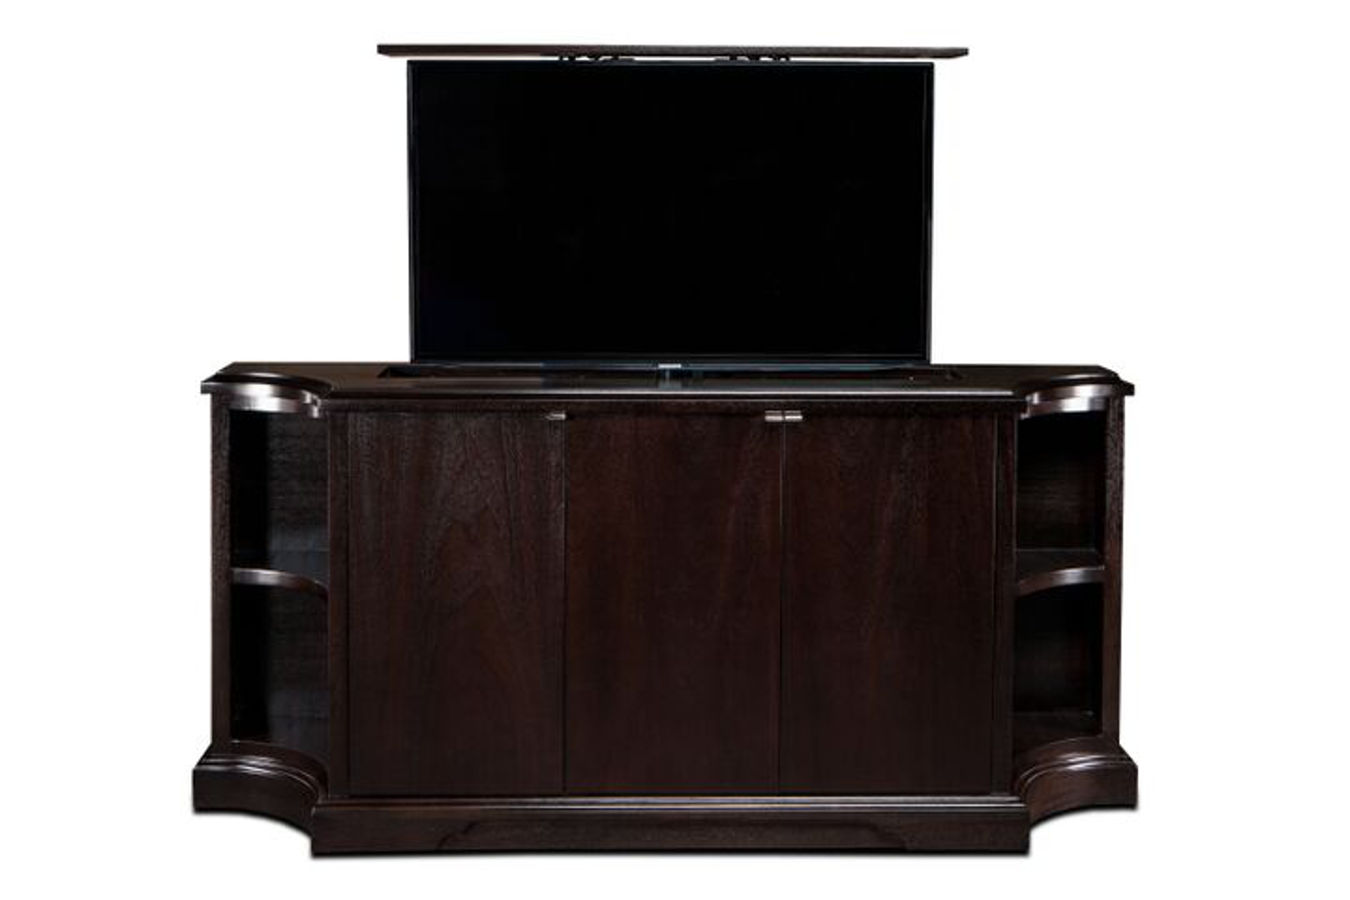 Carlton TV lift furniture by Cabinet Tronix, is perfect for living room and bedrooms